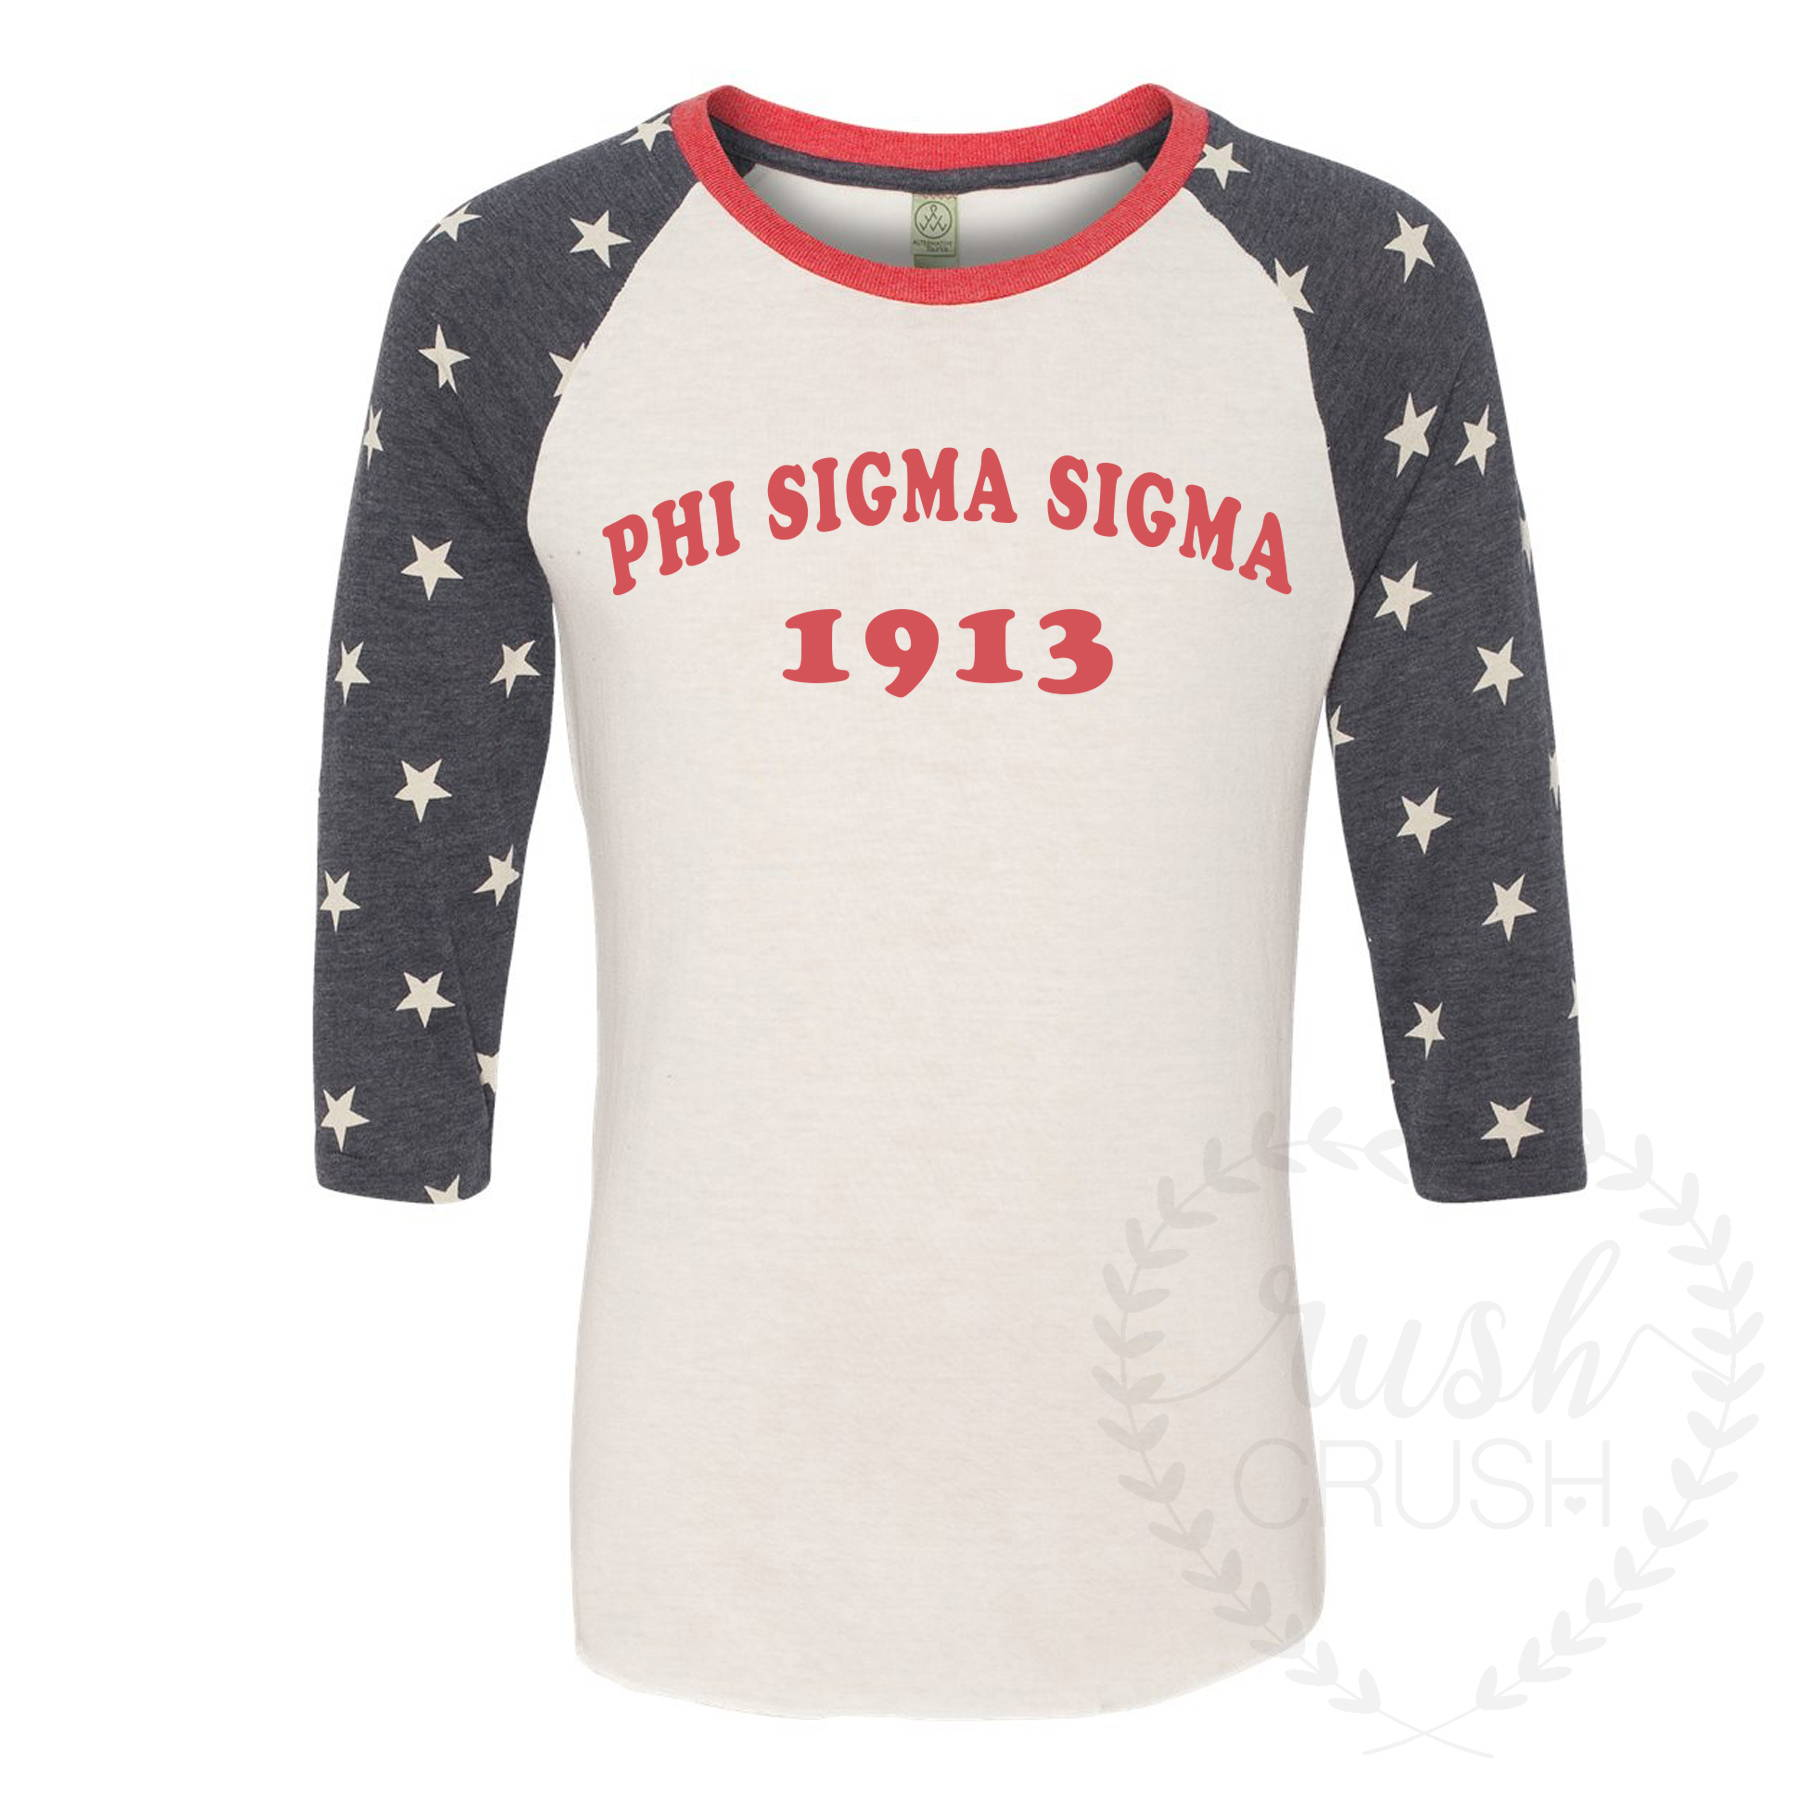 https://shoprushcrush.com/collections/phi-sigma-sigma/products/phi-sigma-sigma-1913-reach-for-the-stars-3-4-sleeve-tee